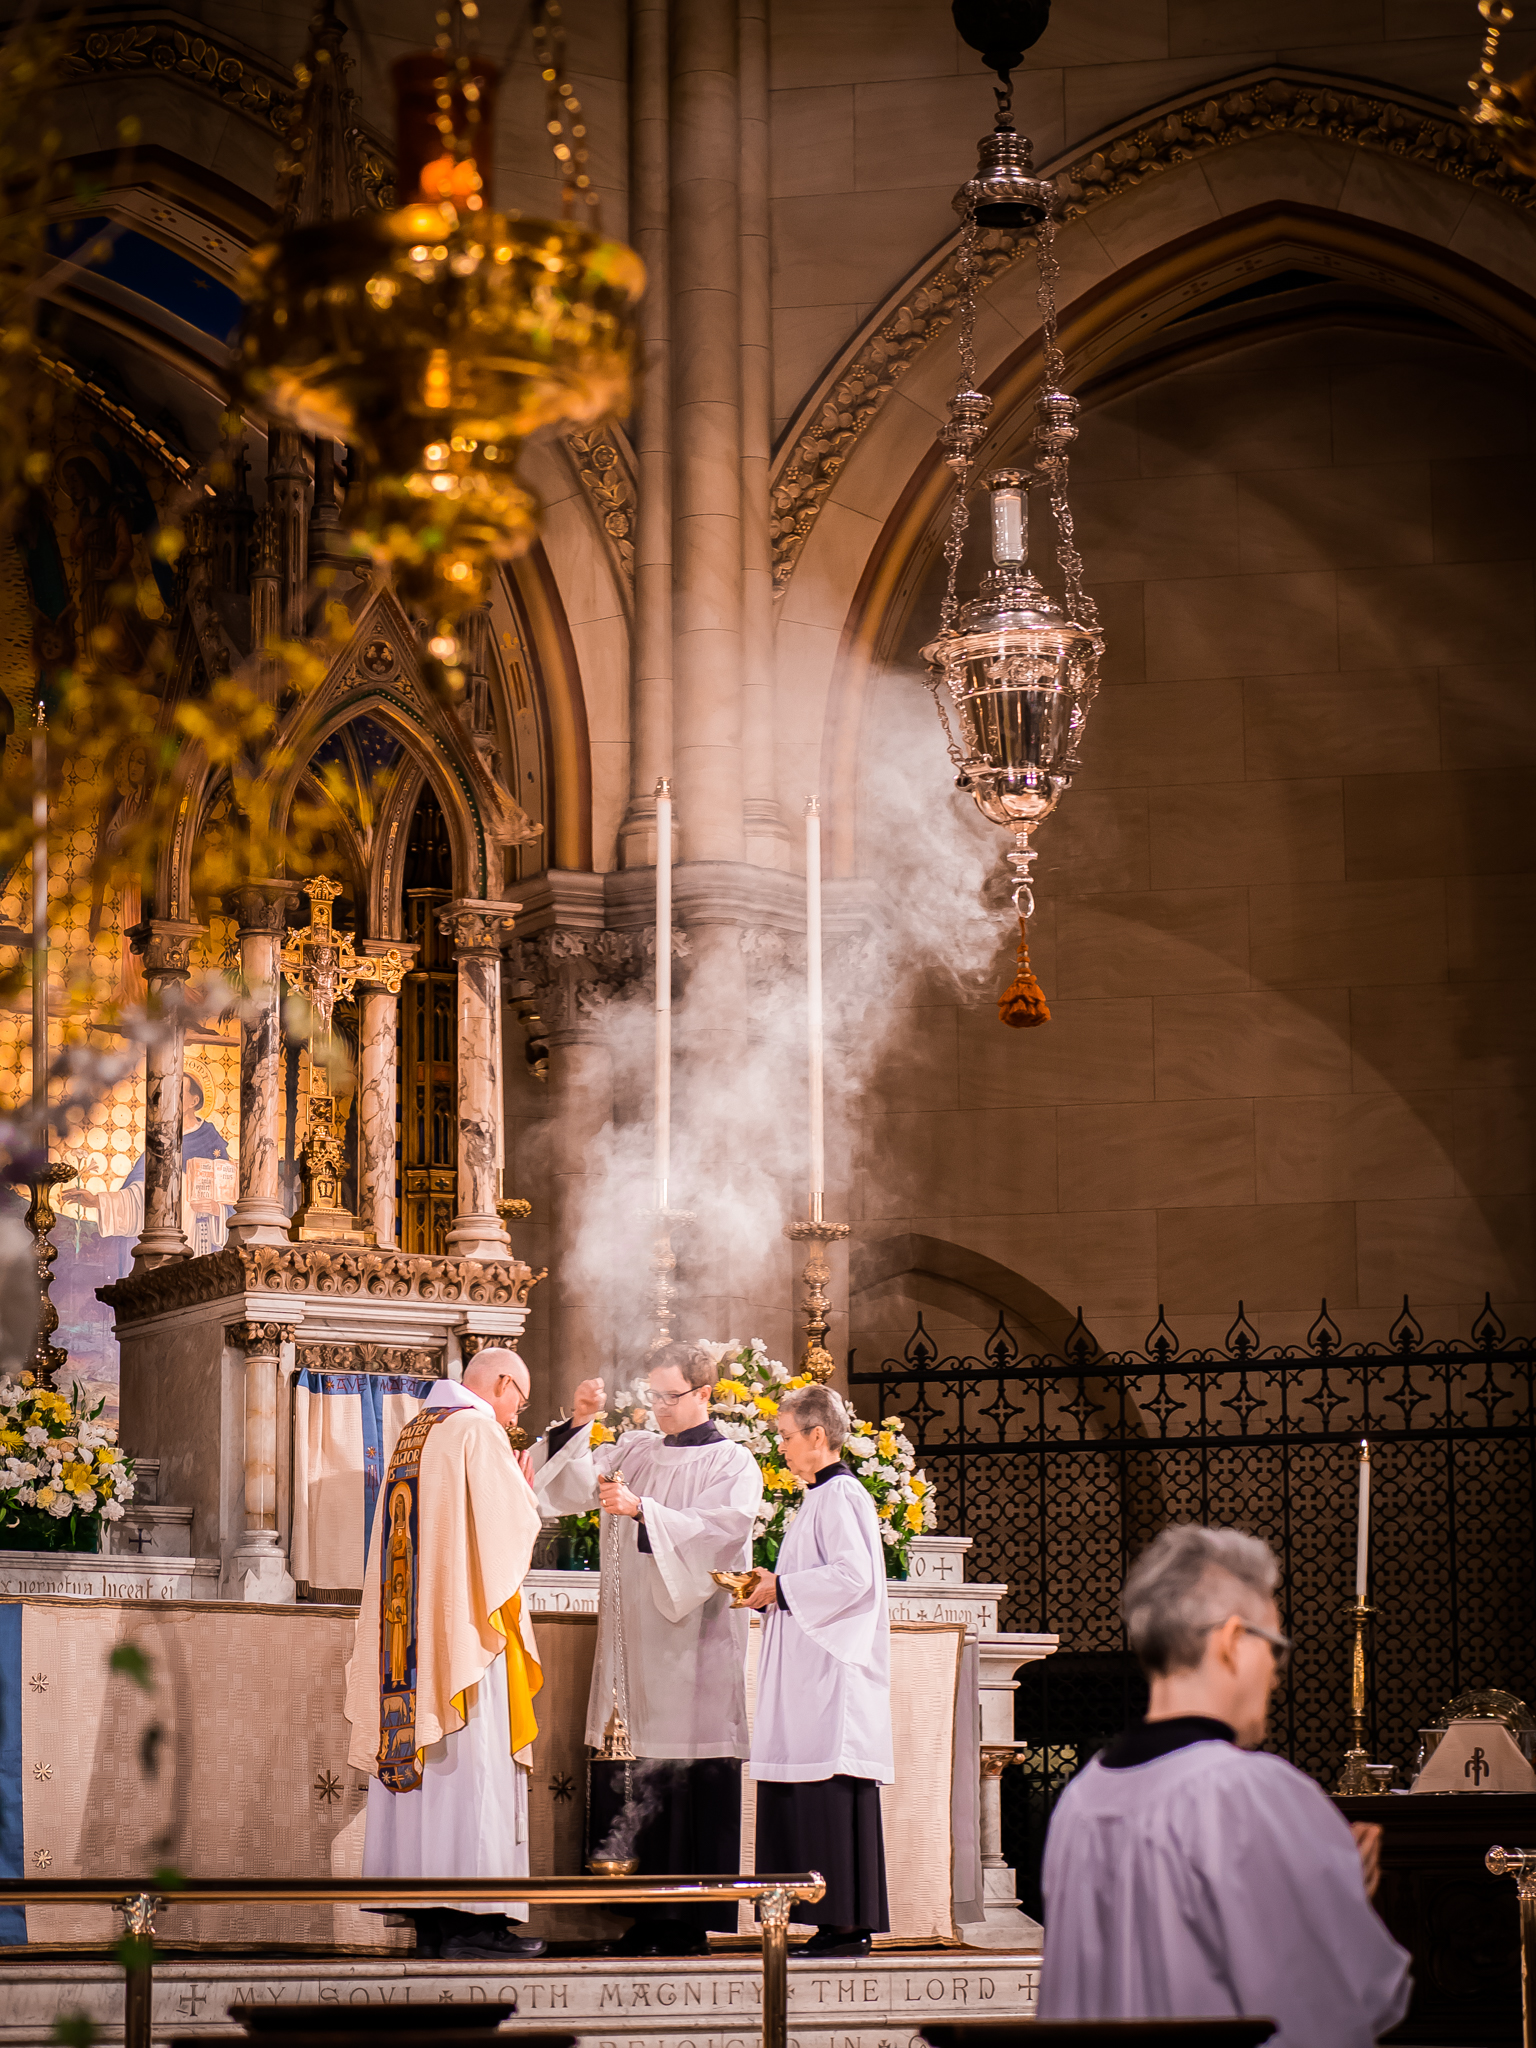 After the opening acclamation, incense is prepared and the altar is censed while the choir sings  Gloria in excelsis.    Photo by Ricardo Gomez